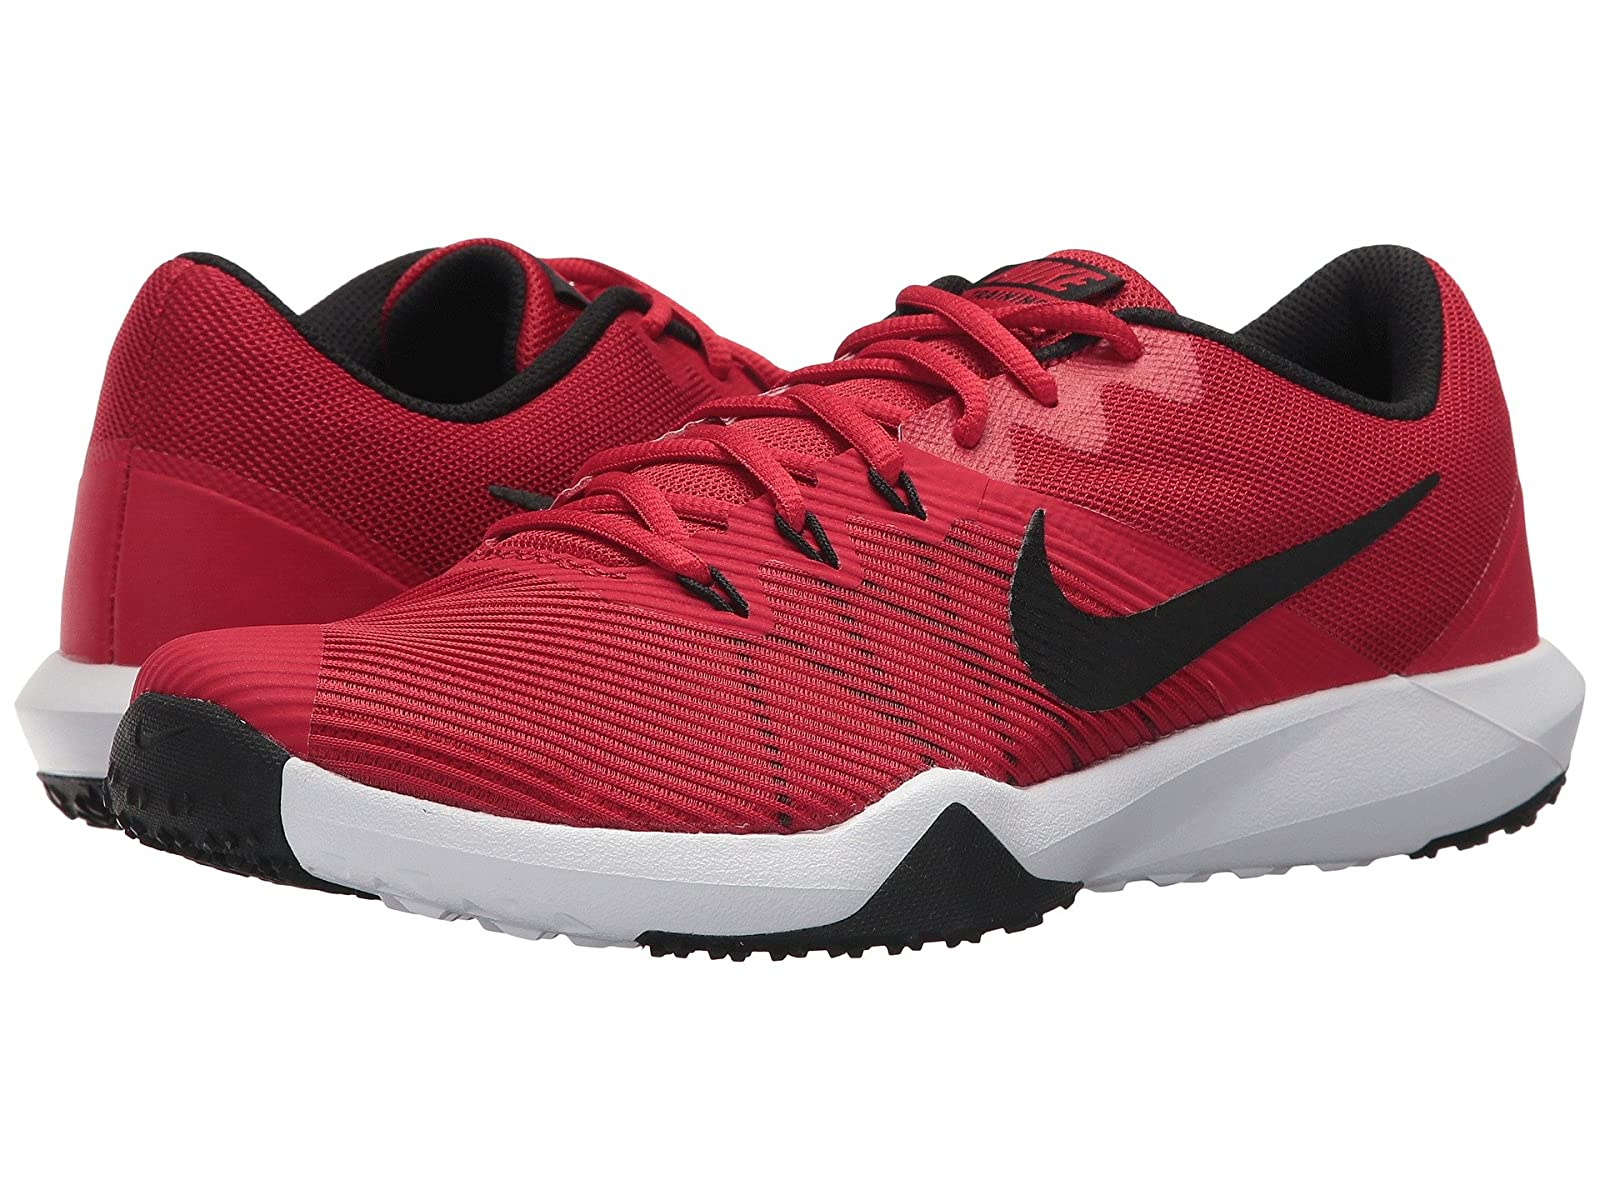 Nike Retaliation TRCheap and distinctive eye-catching shoes